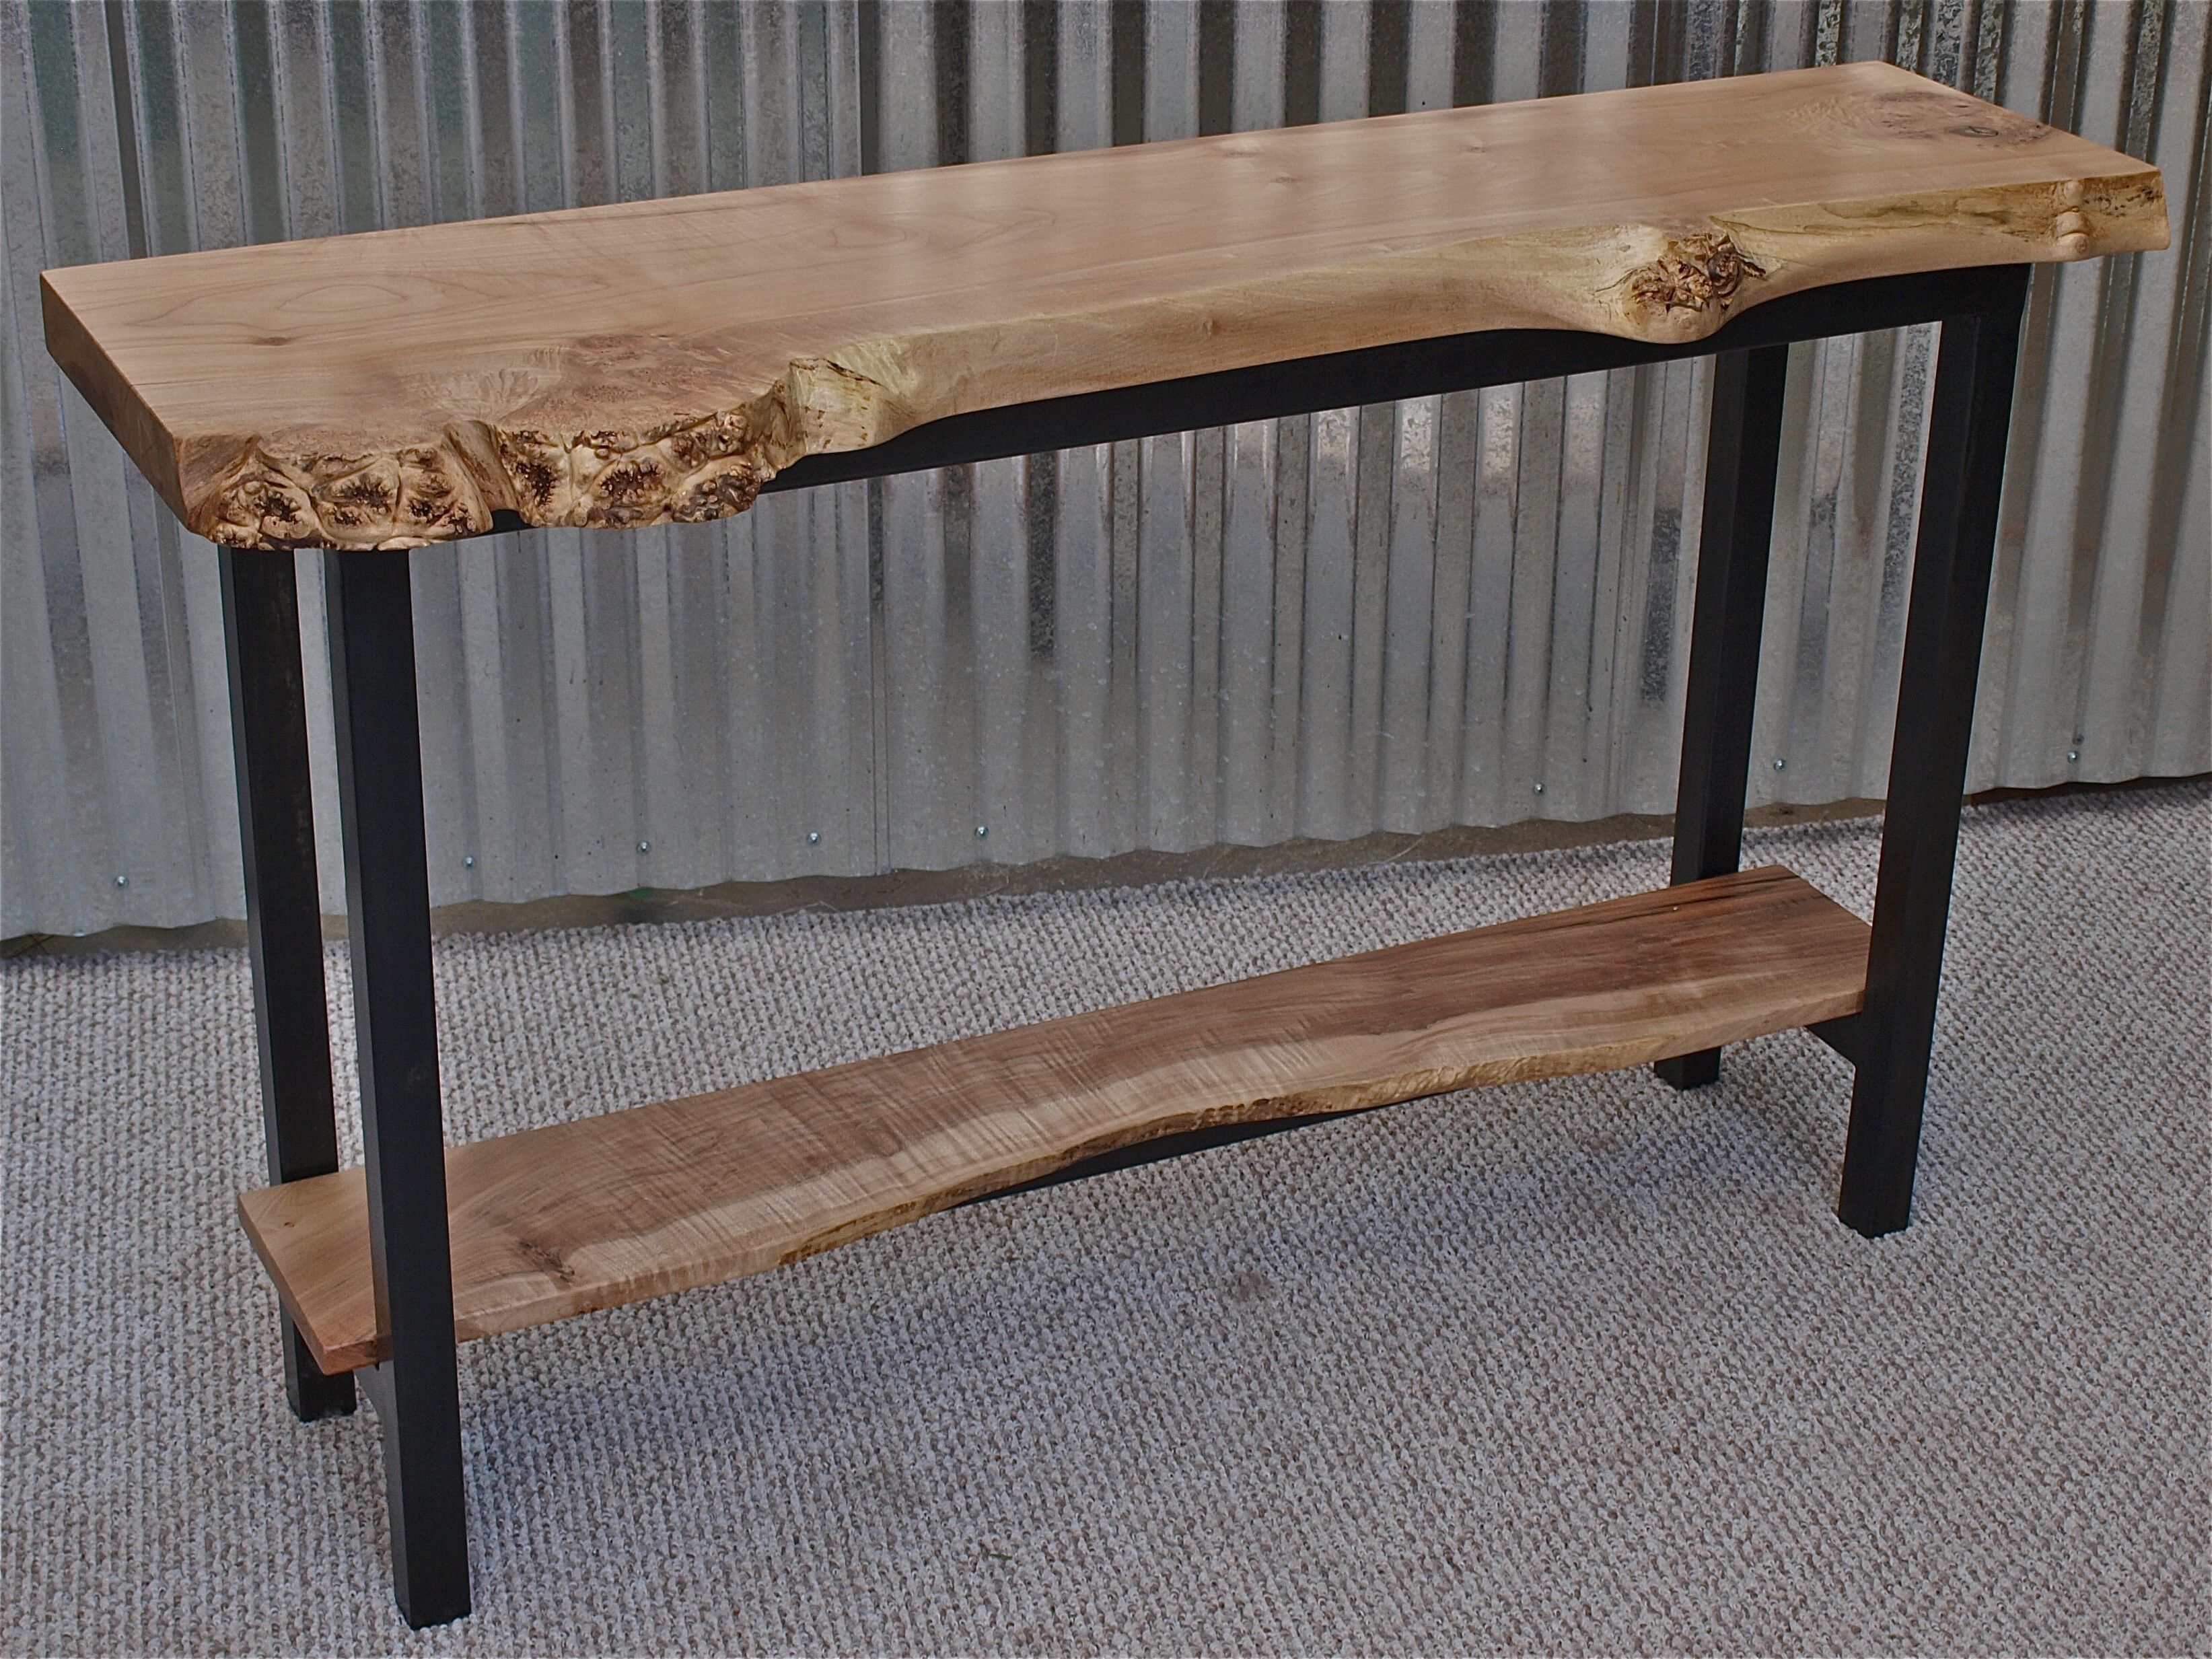 Live edge maple console table blackened steel base 48 x 13 x 32 live edge maple console table blackened steel base 48 x 13 x 32 geotapseo Image collections